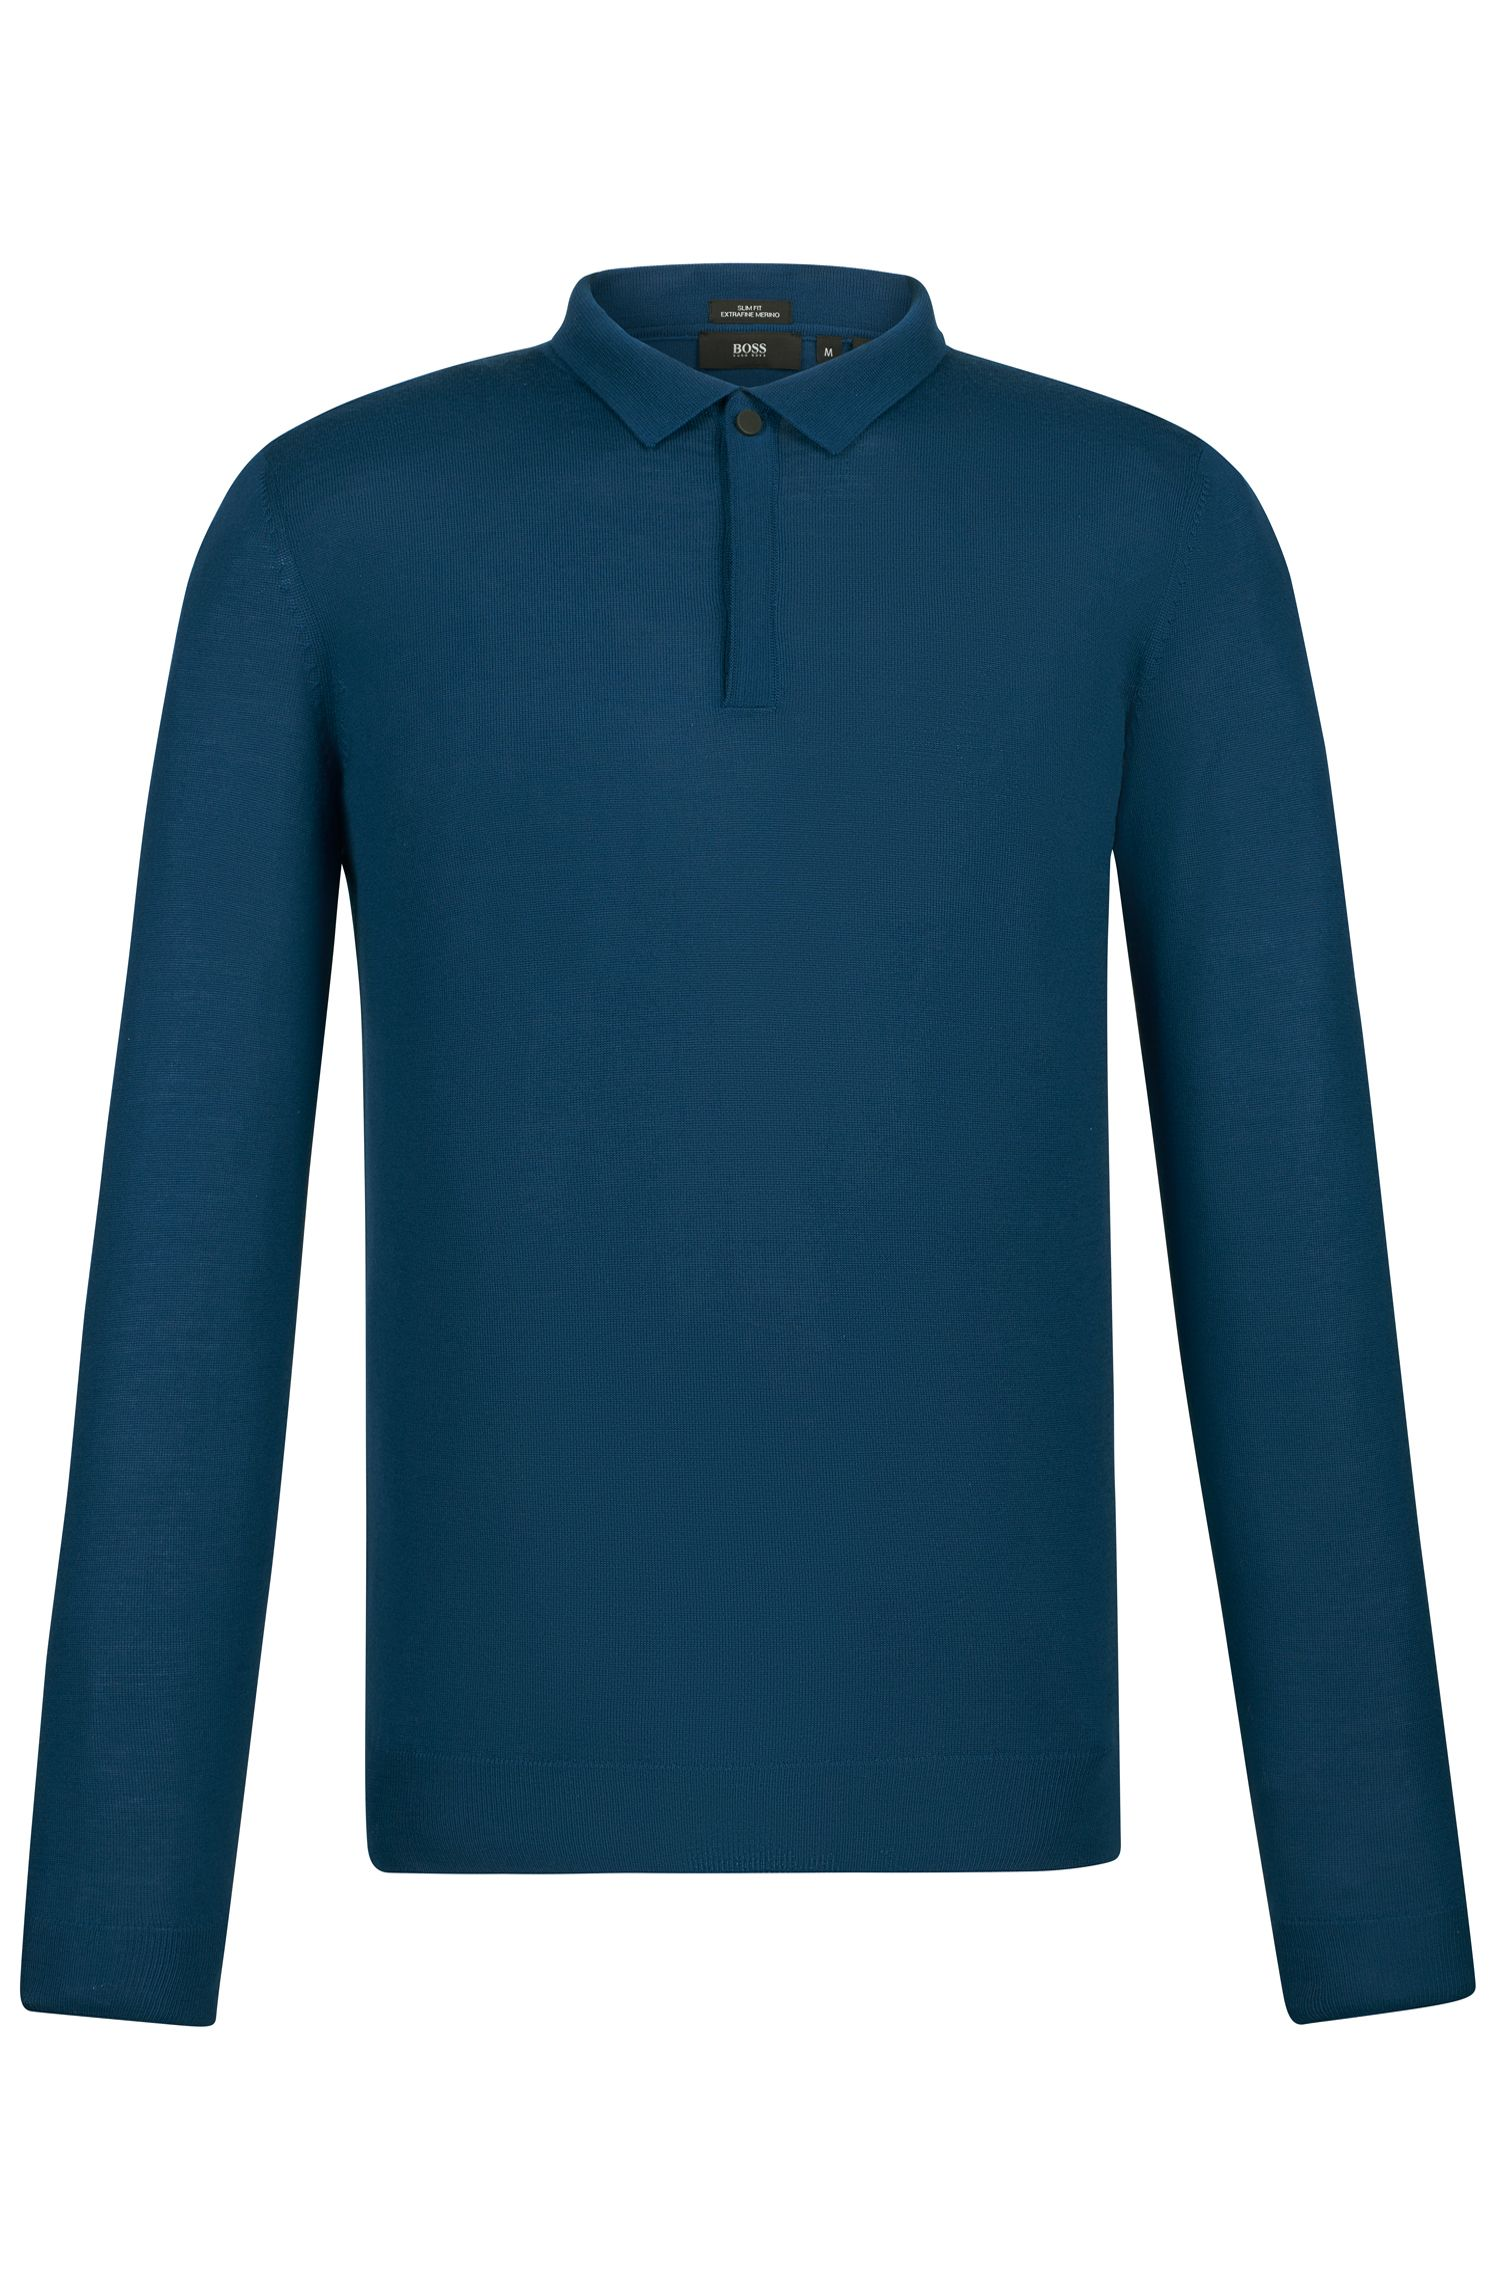 'Iden' | Slim Fit, Merino Virgin Wool Polo Sweater